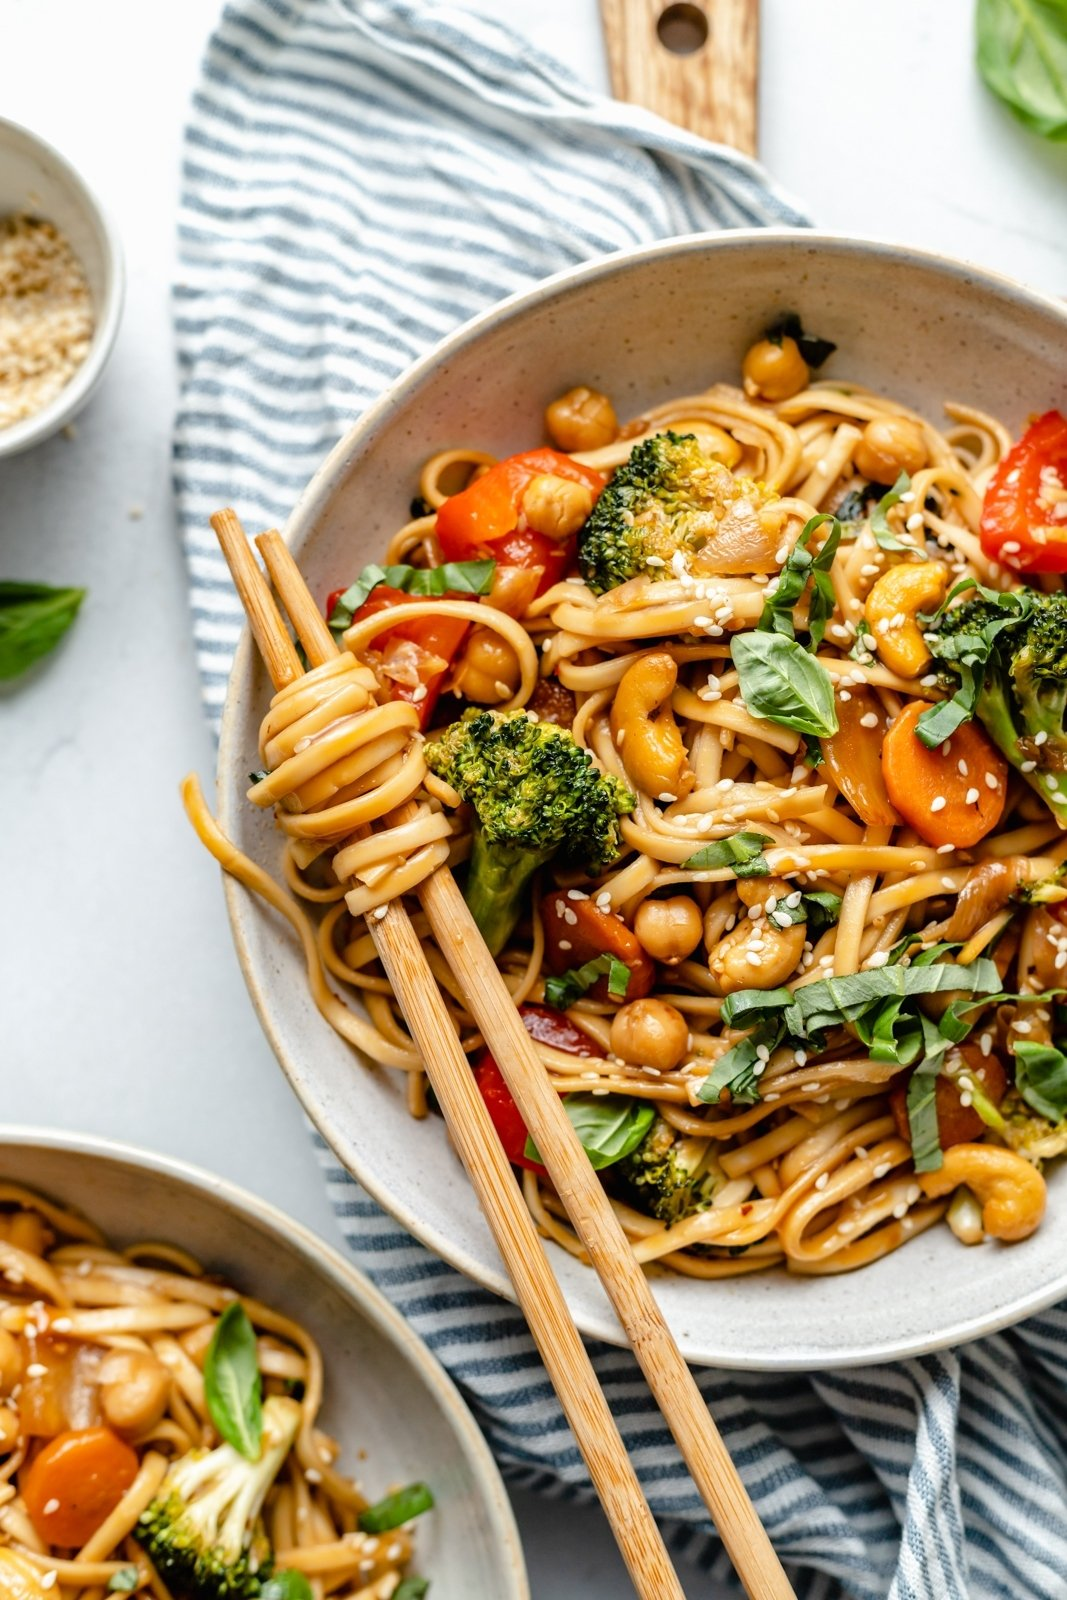 stir fry noodles in a bowl with vegetables and chopsticks